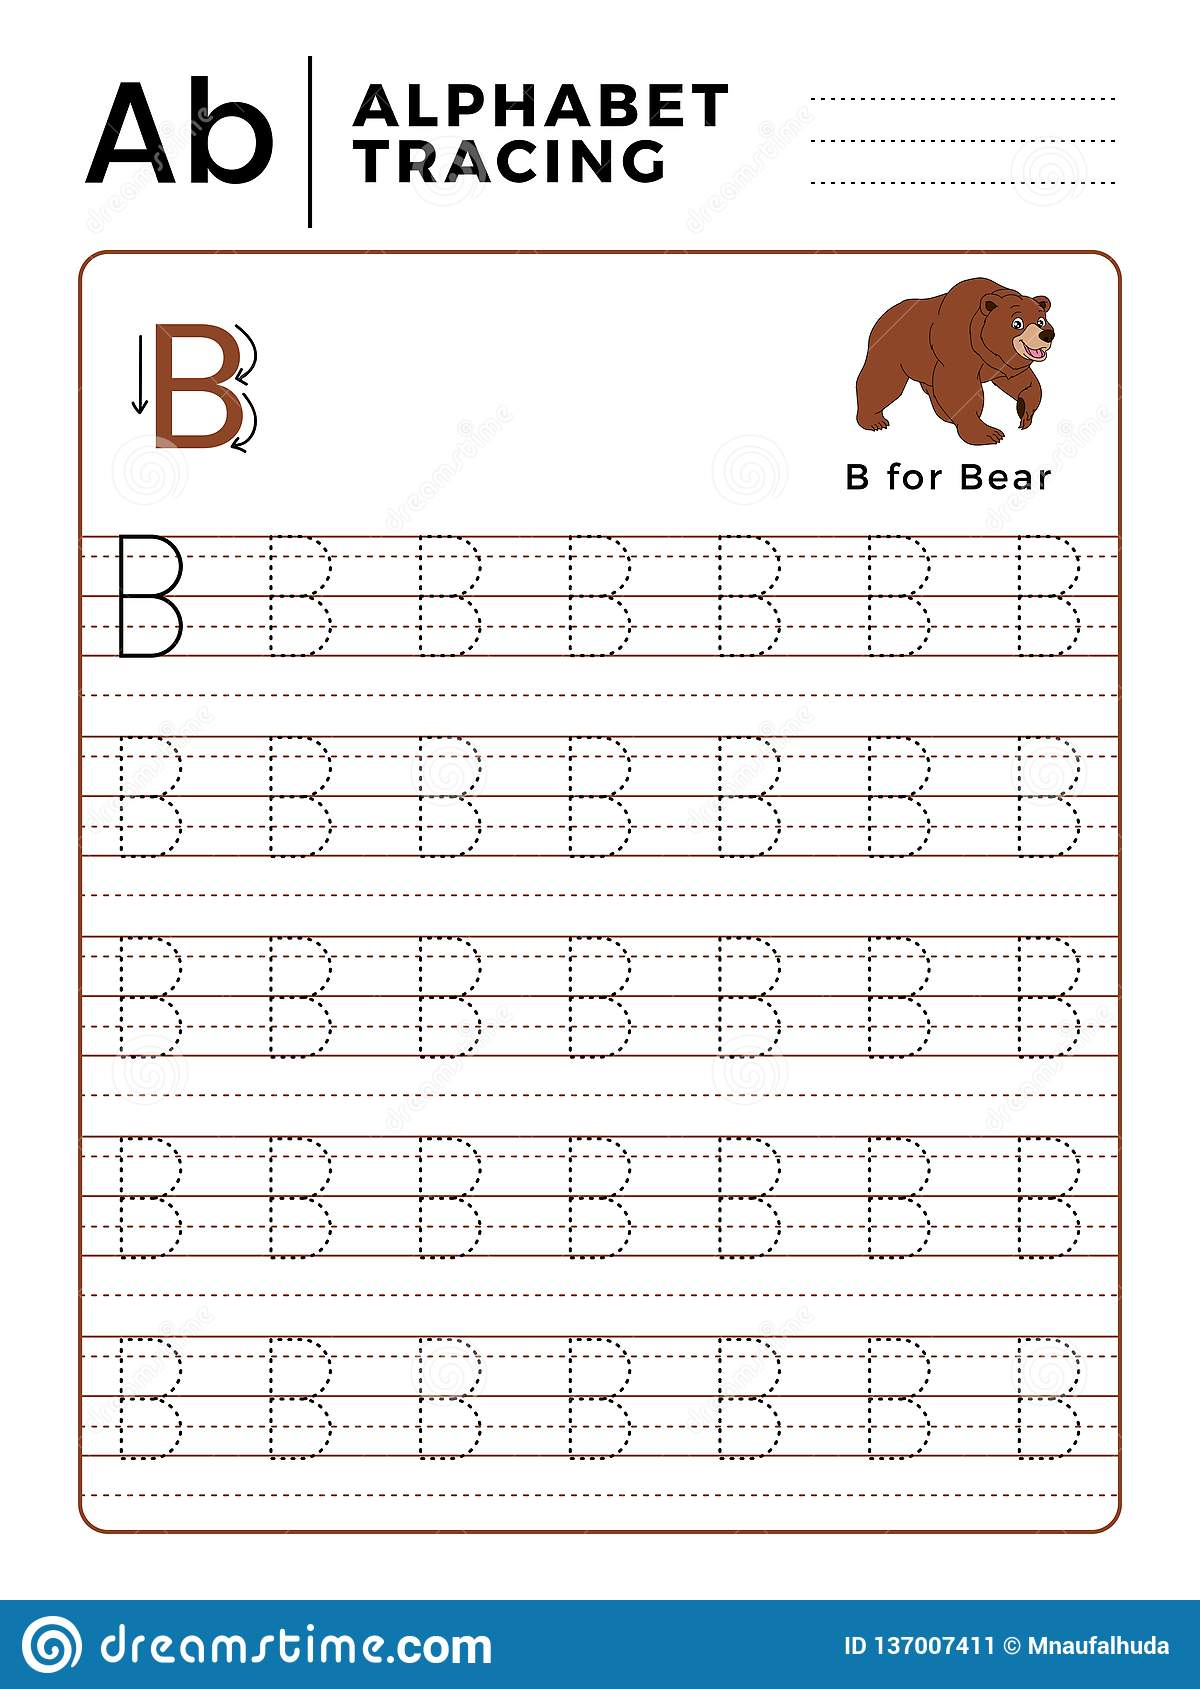 Letter B Alphabet Tracing Book With Example And Funny Bear